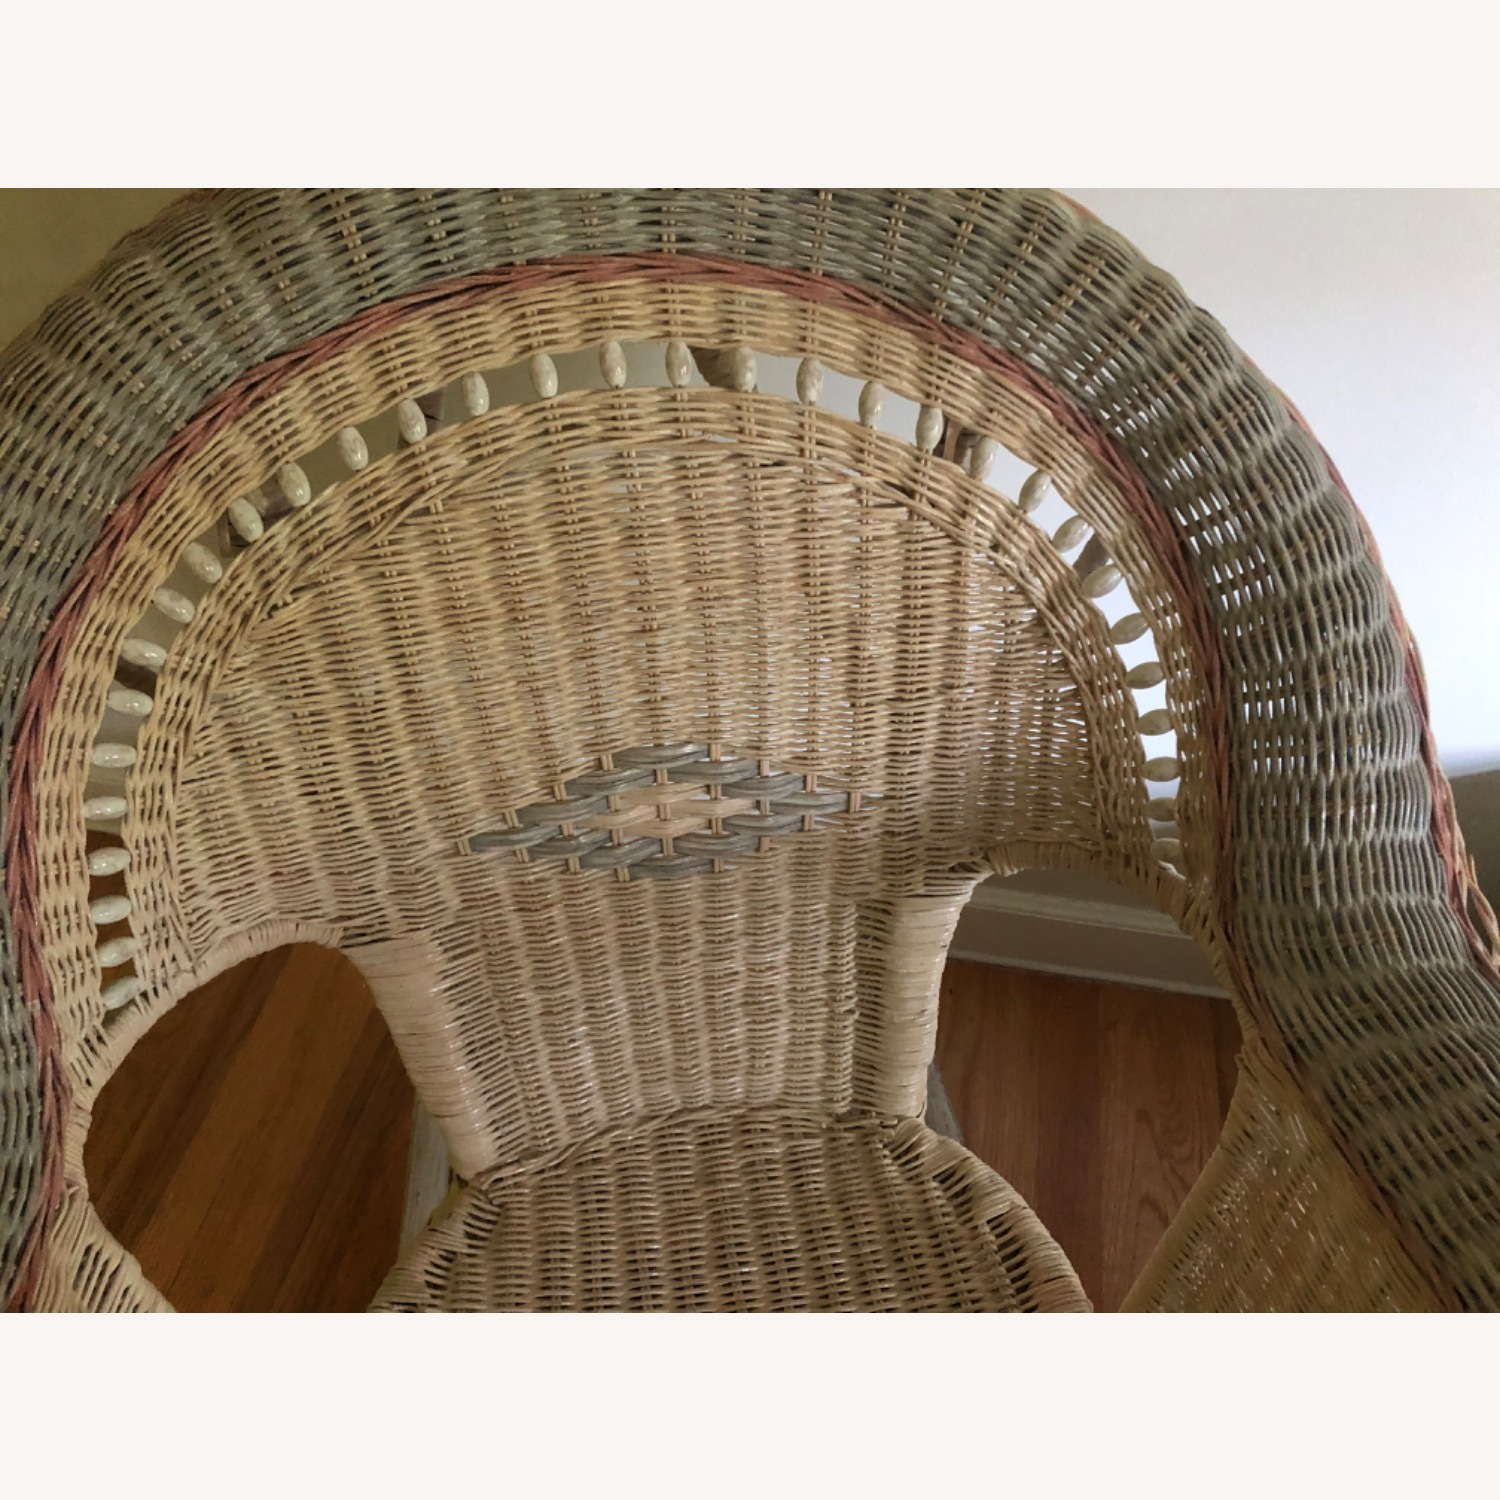 Wicker Ricking Chair - image-3